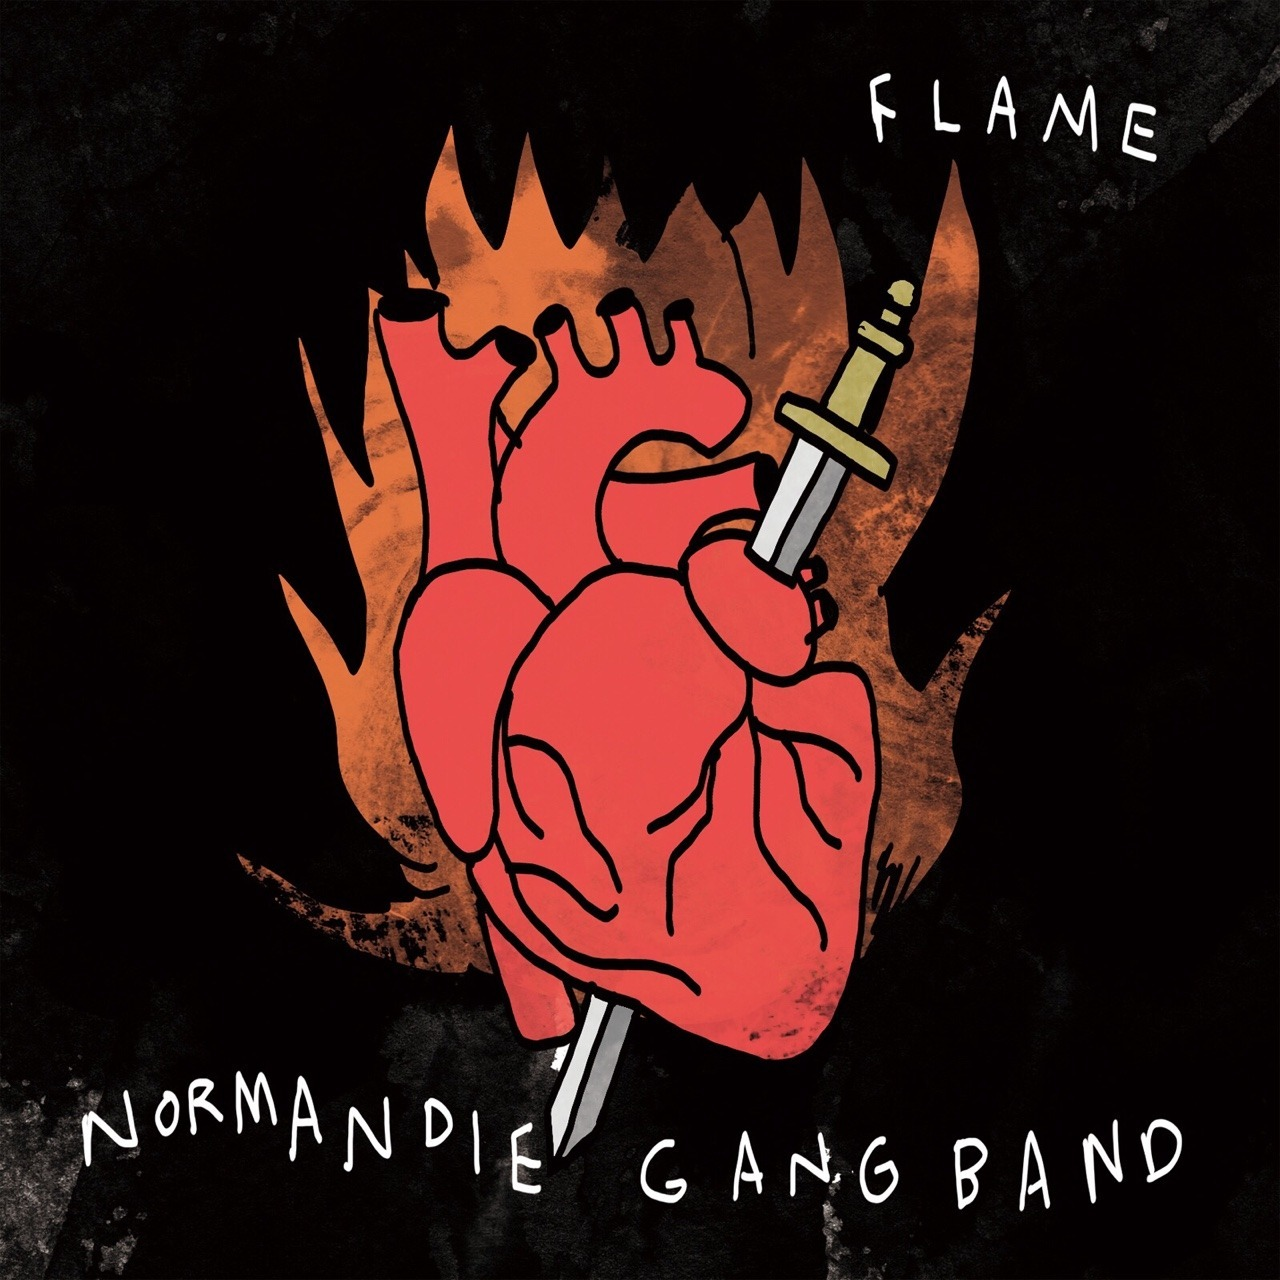 [CD] NORMANDIE GANG BAND / FLAME